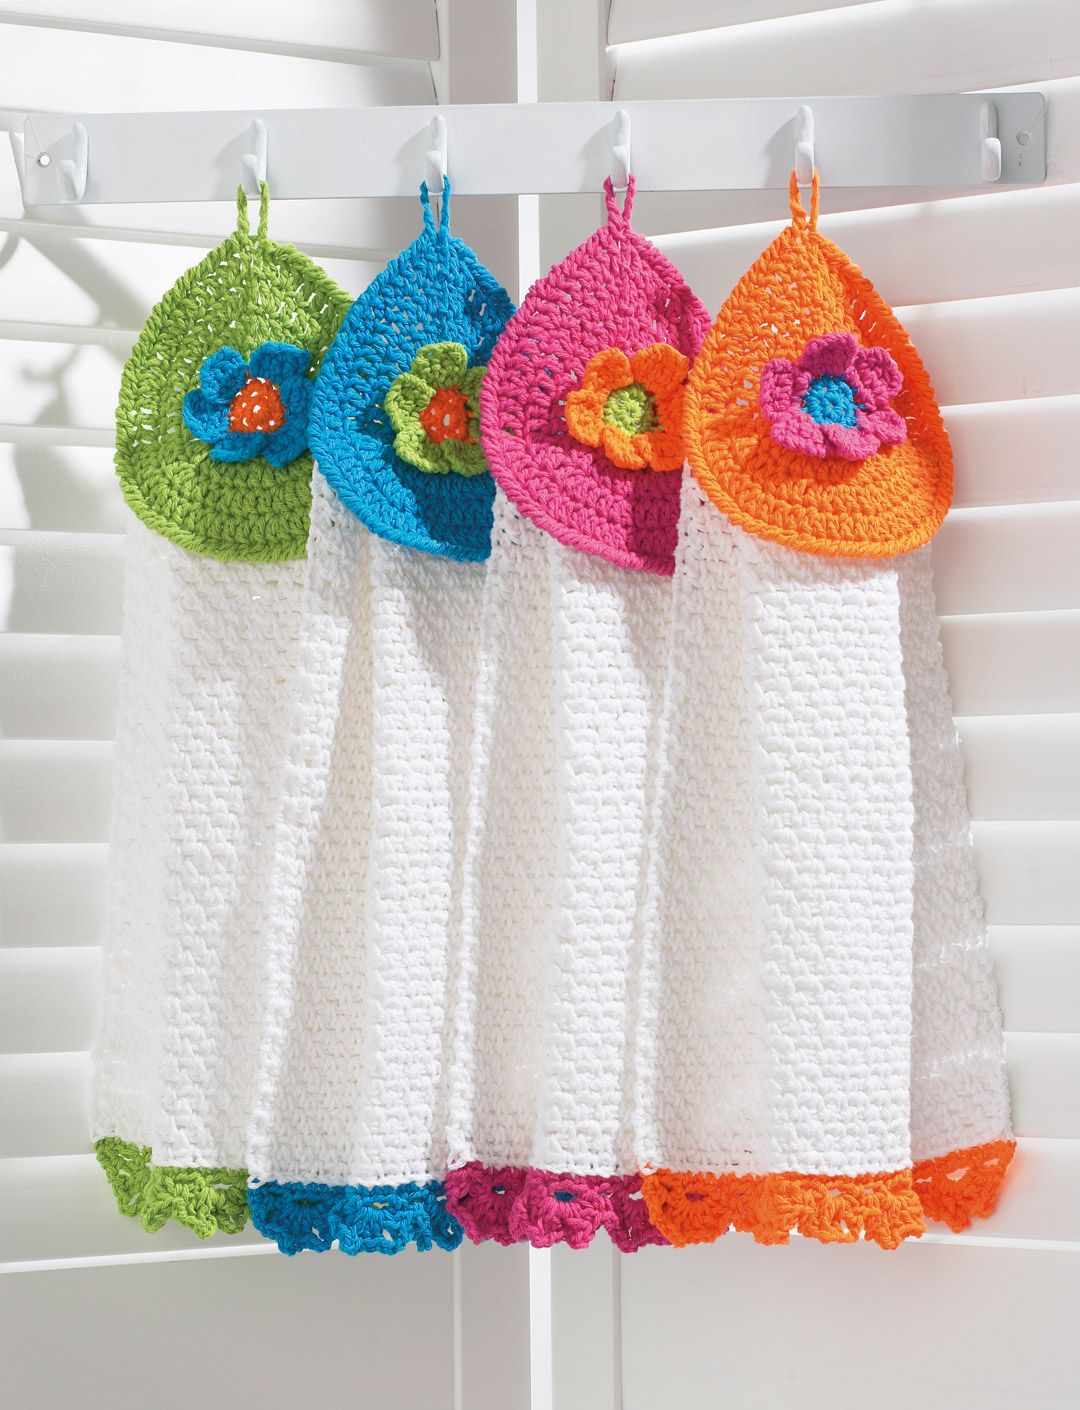 Pretty Flowers Tea Towels | Yarn | Free Knitting Patterns | Crochet ...